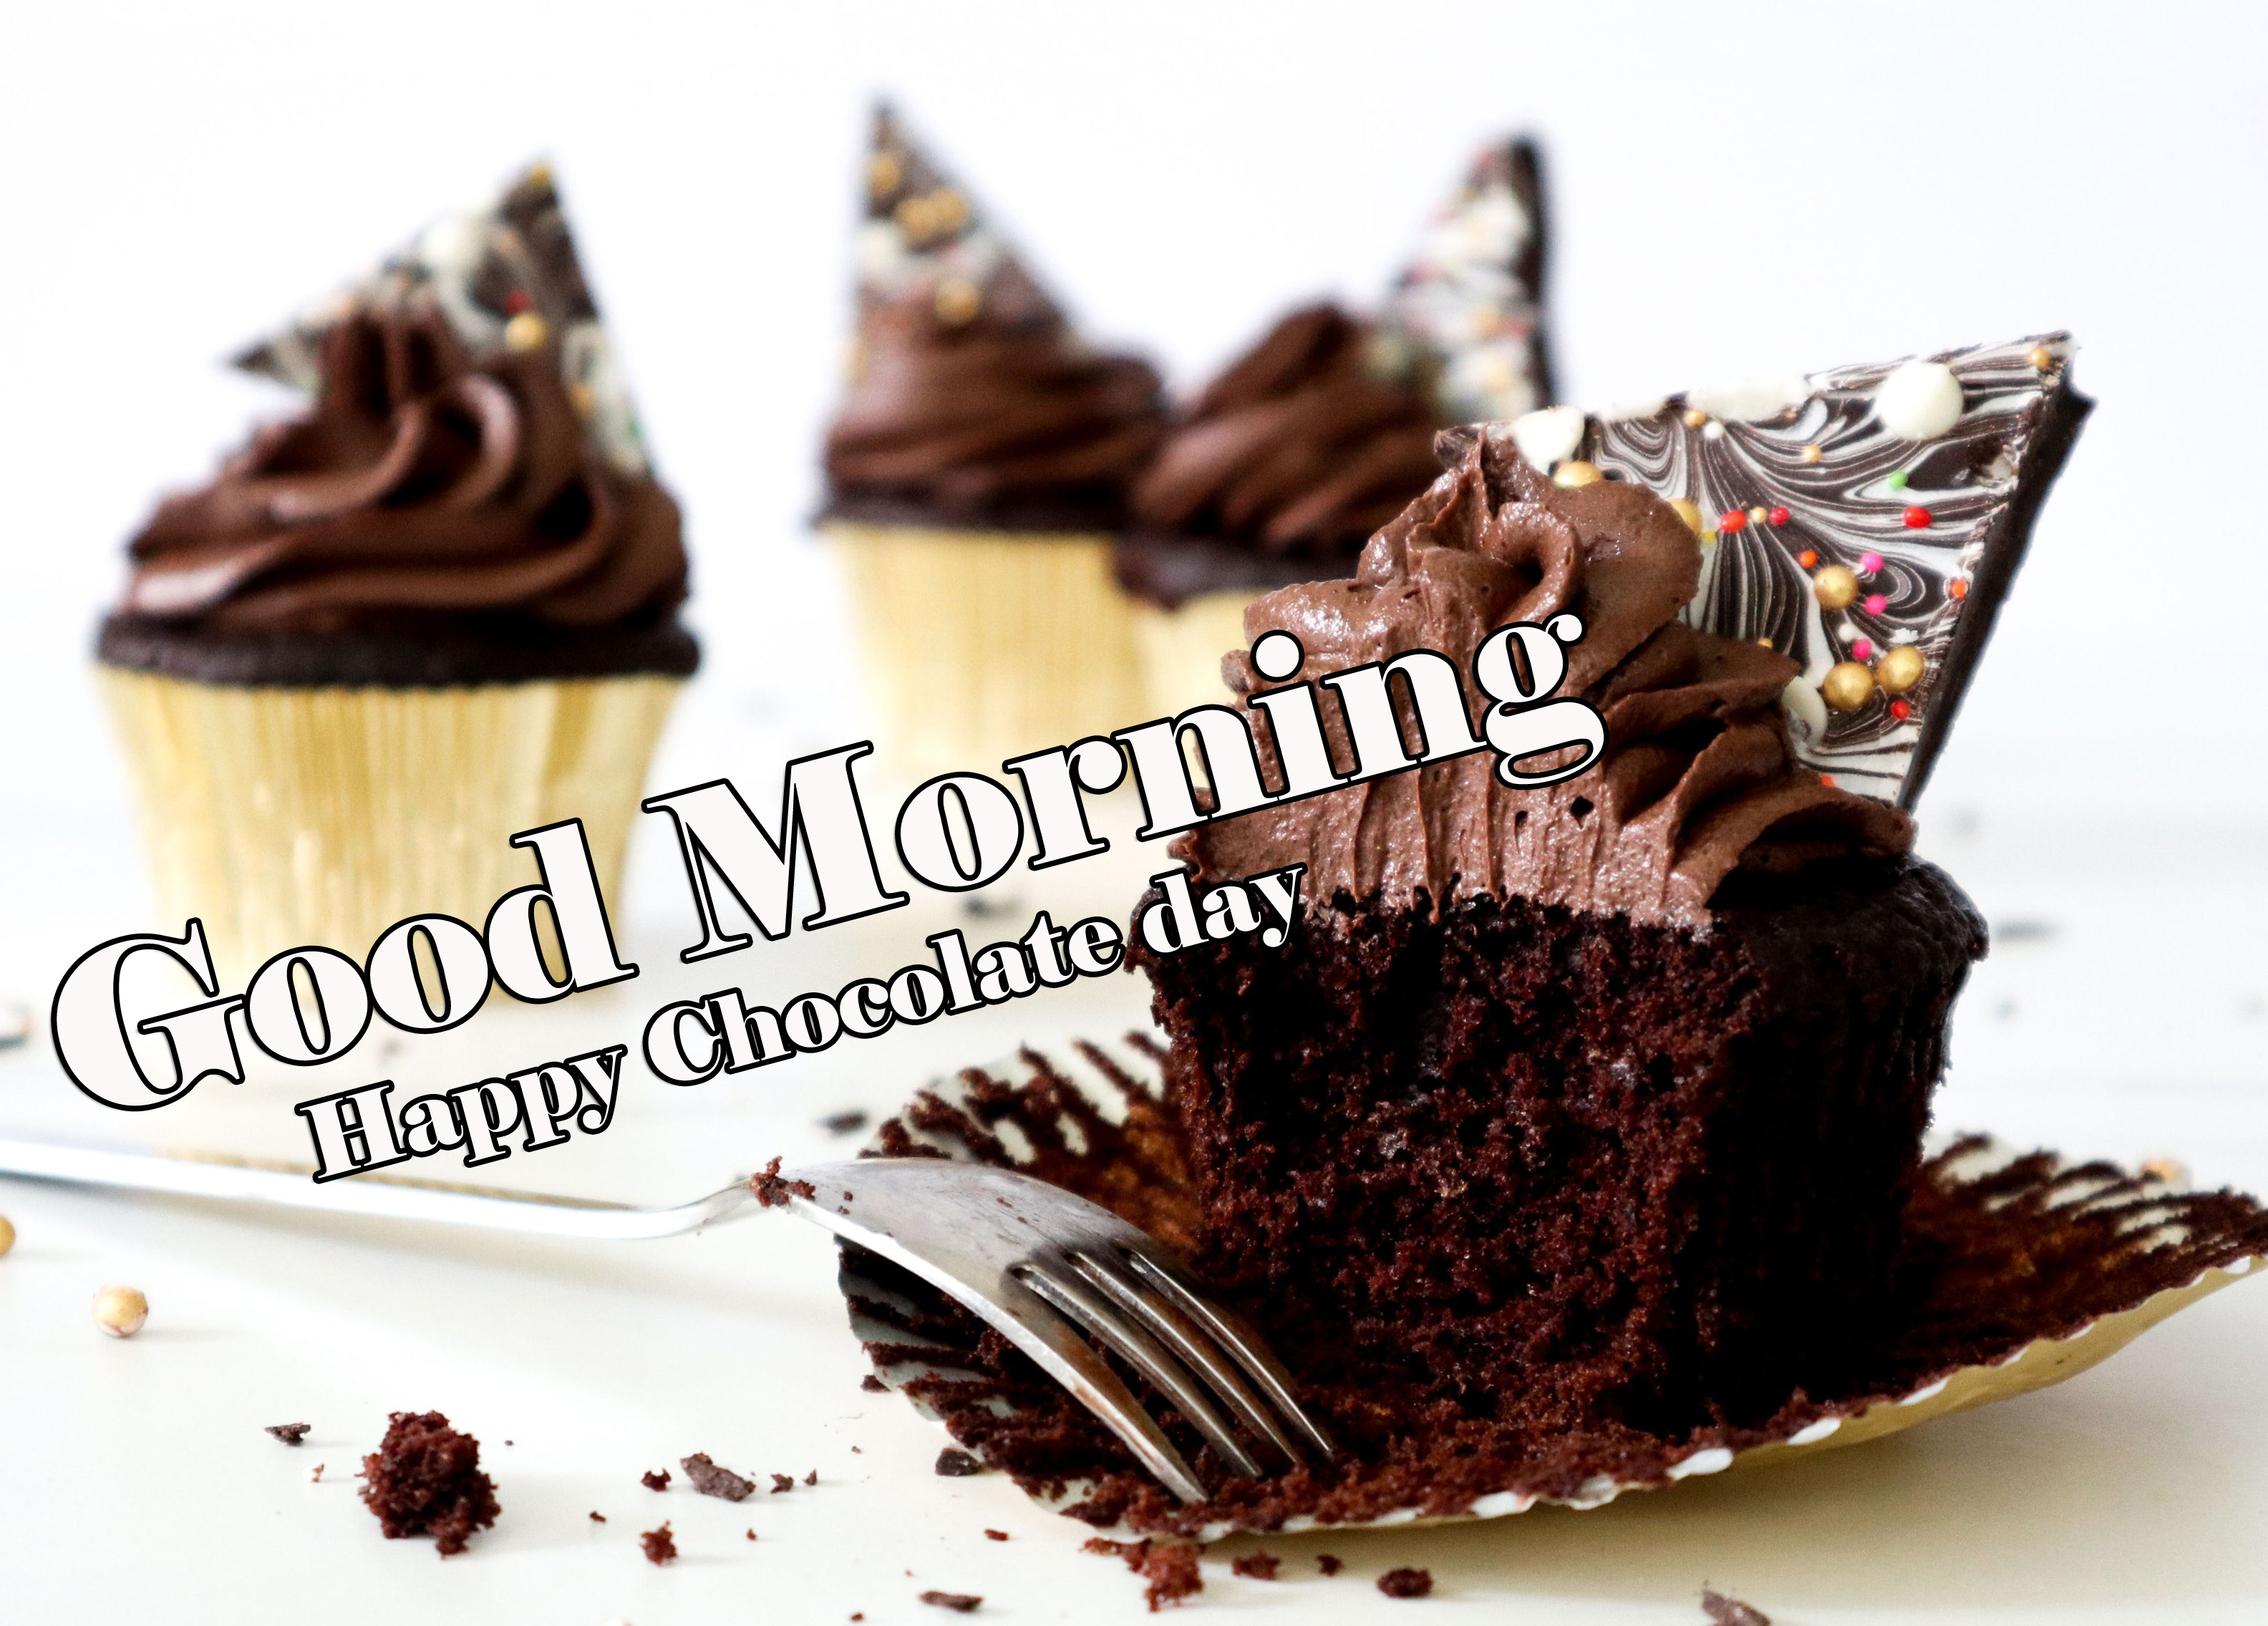 Happy Chocolate Day Good Morning Images Wallpaper Latest Download Free